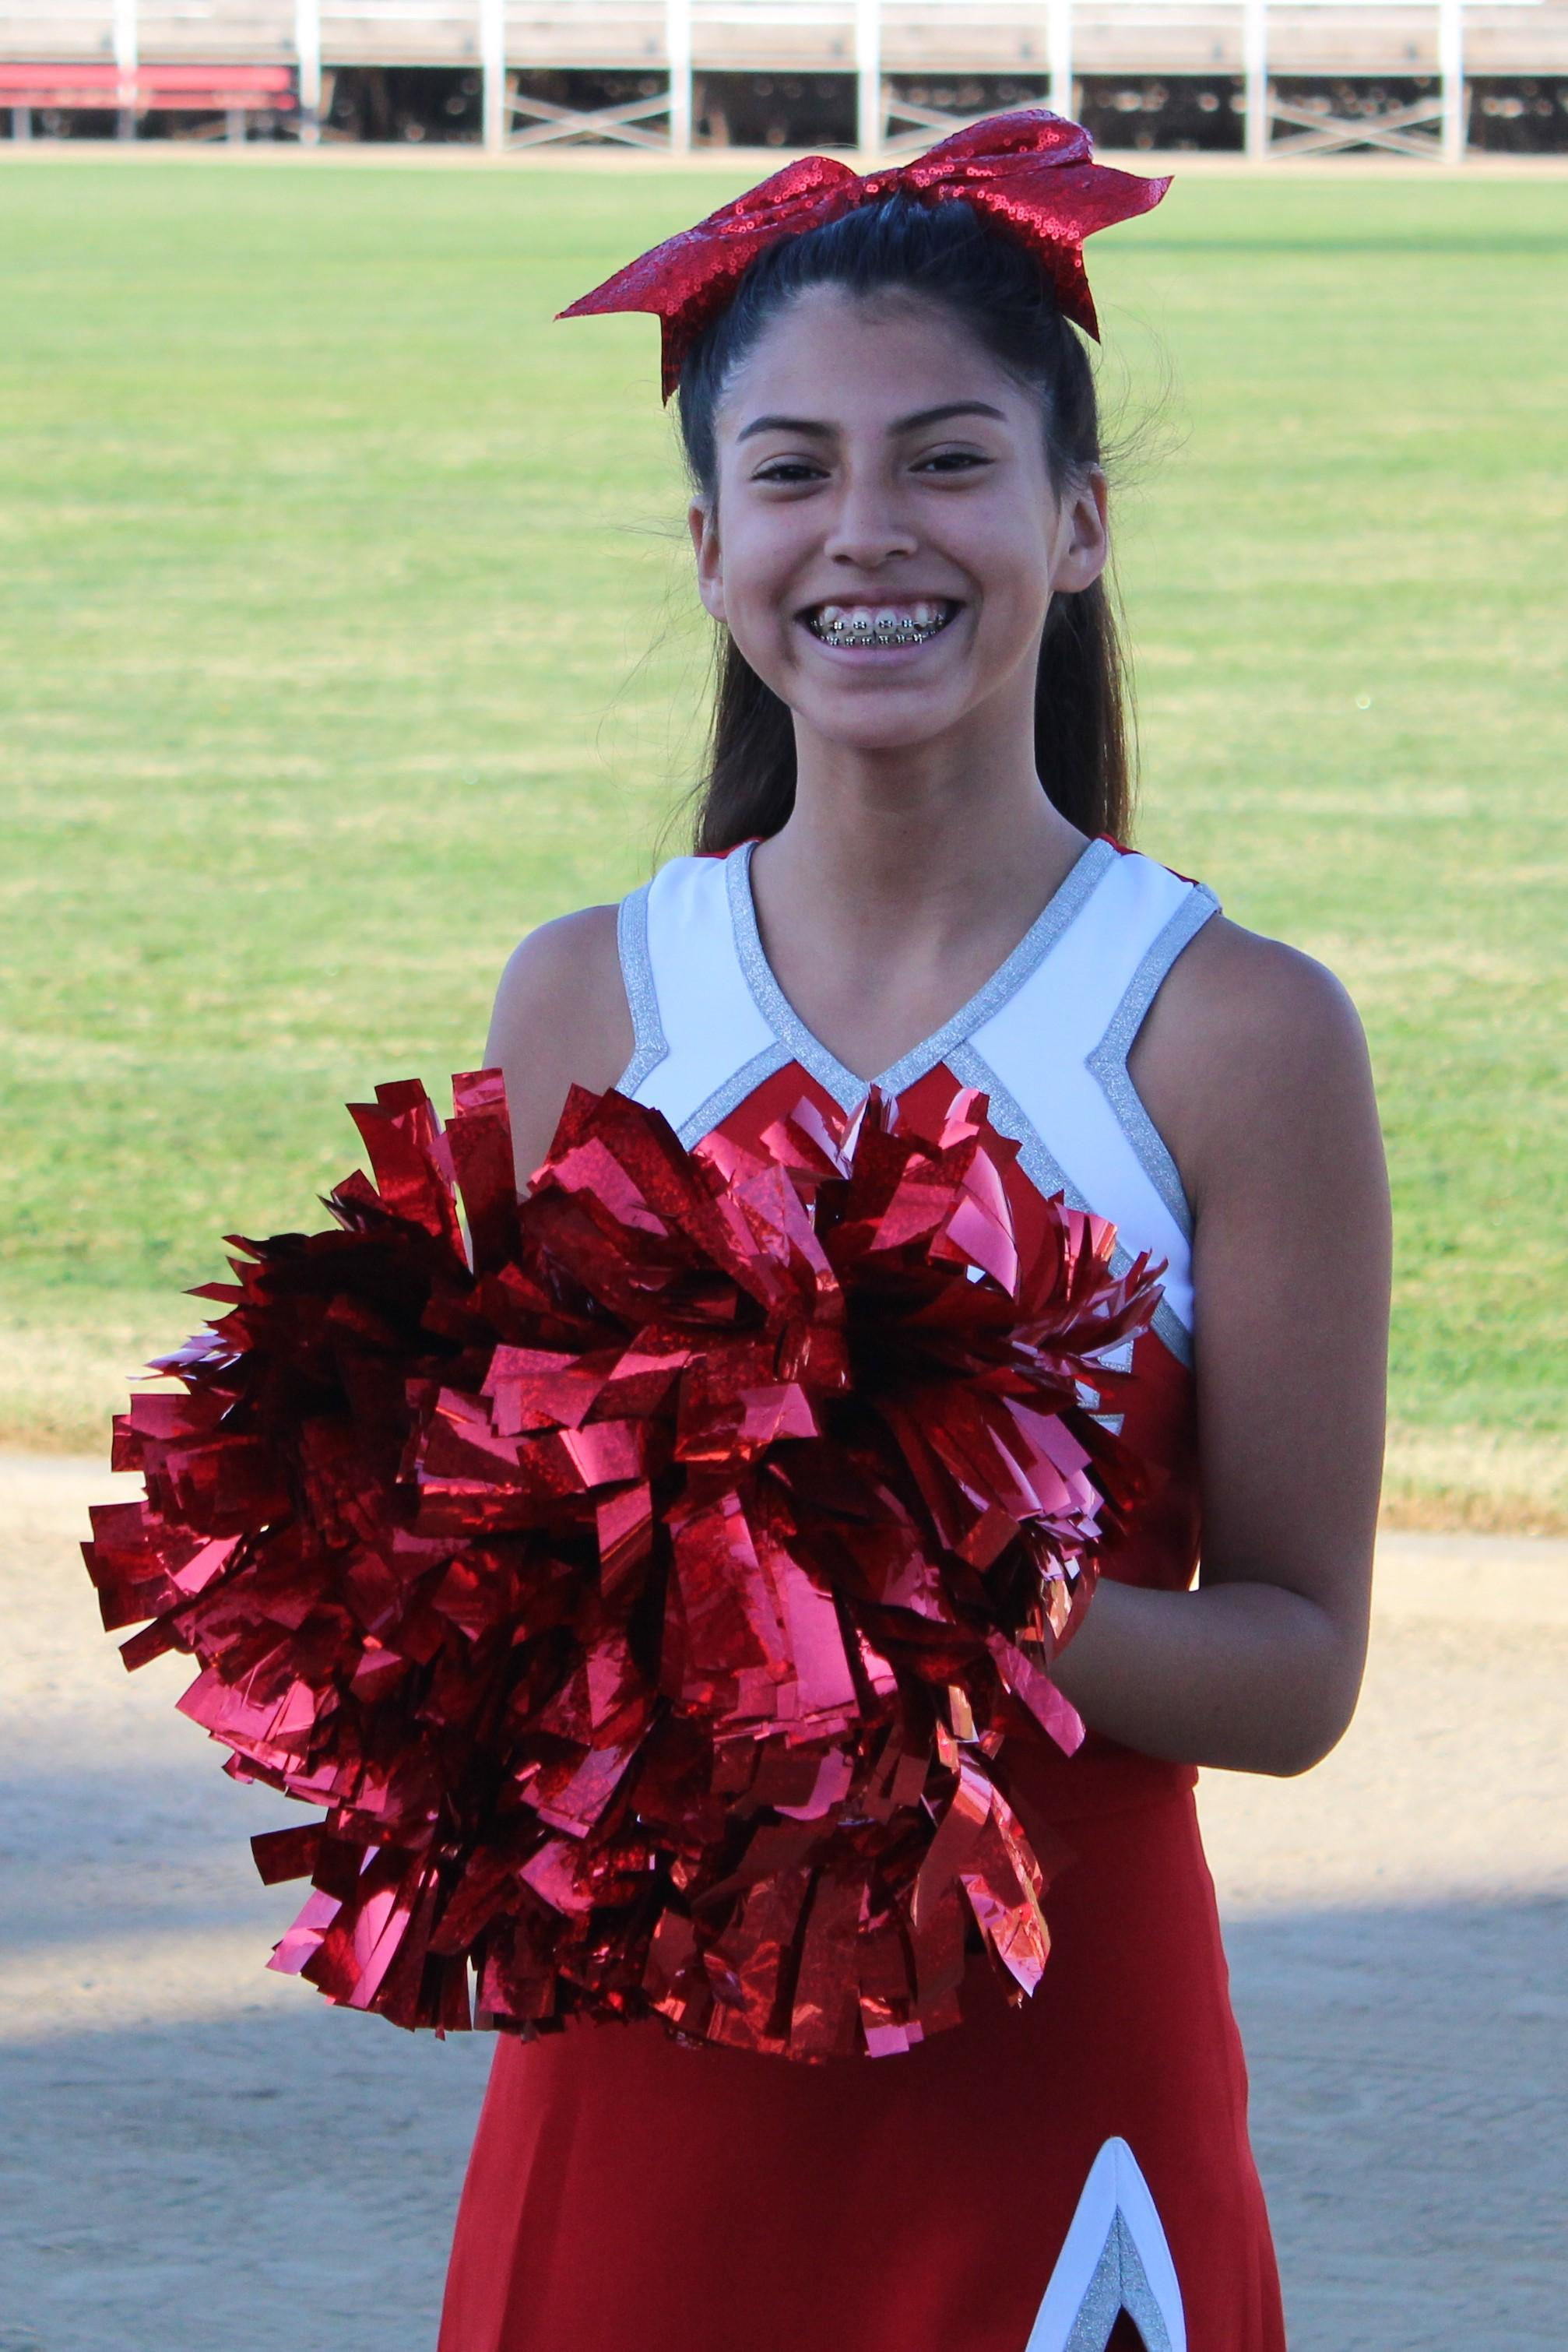 A cheerleader posing for a photograph